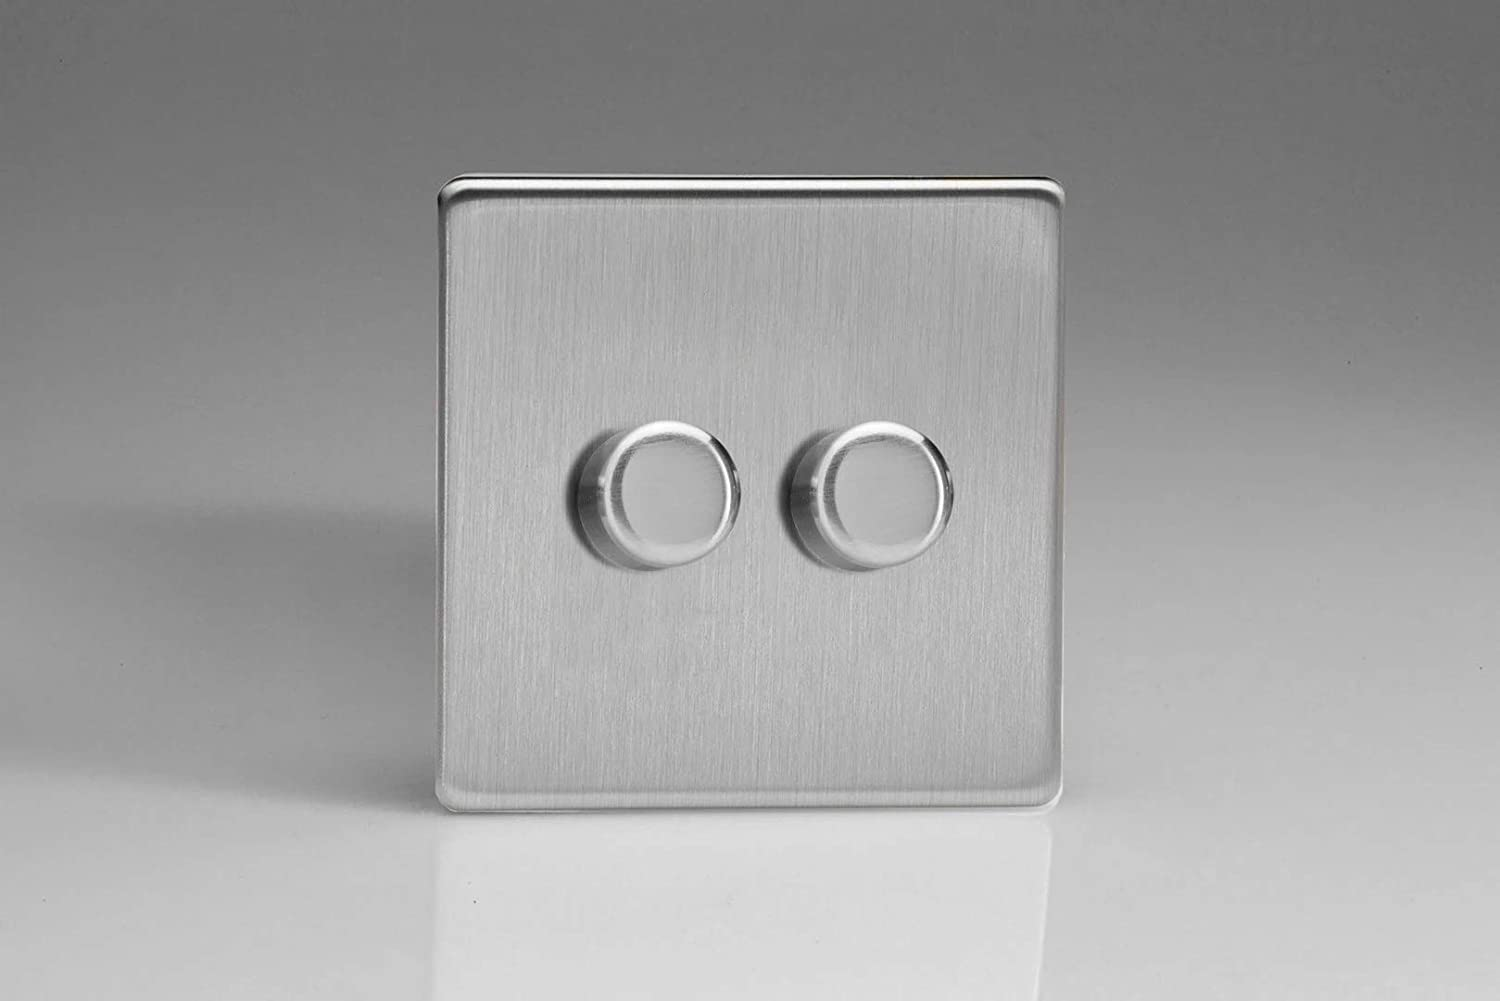 Trailing Edge LED dimmer switch/ 2/velocidades Varilight Brushed Steel screwless /V de Pro Series by Varilight 1/or 2/Way Single 250/W